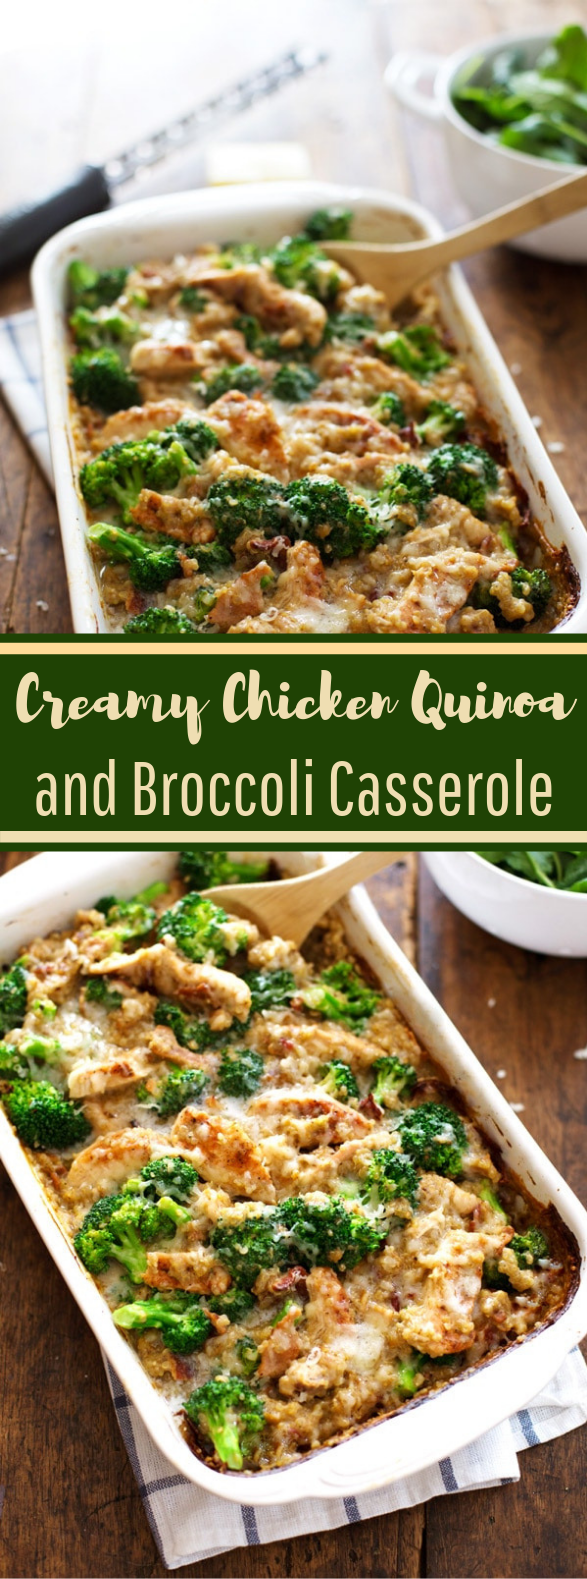 Creamy Chicken Quinoa and Broccoli Casserole #healthy #lowcarb